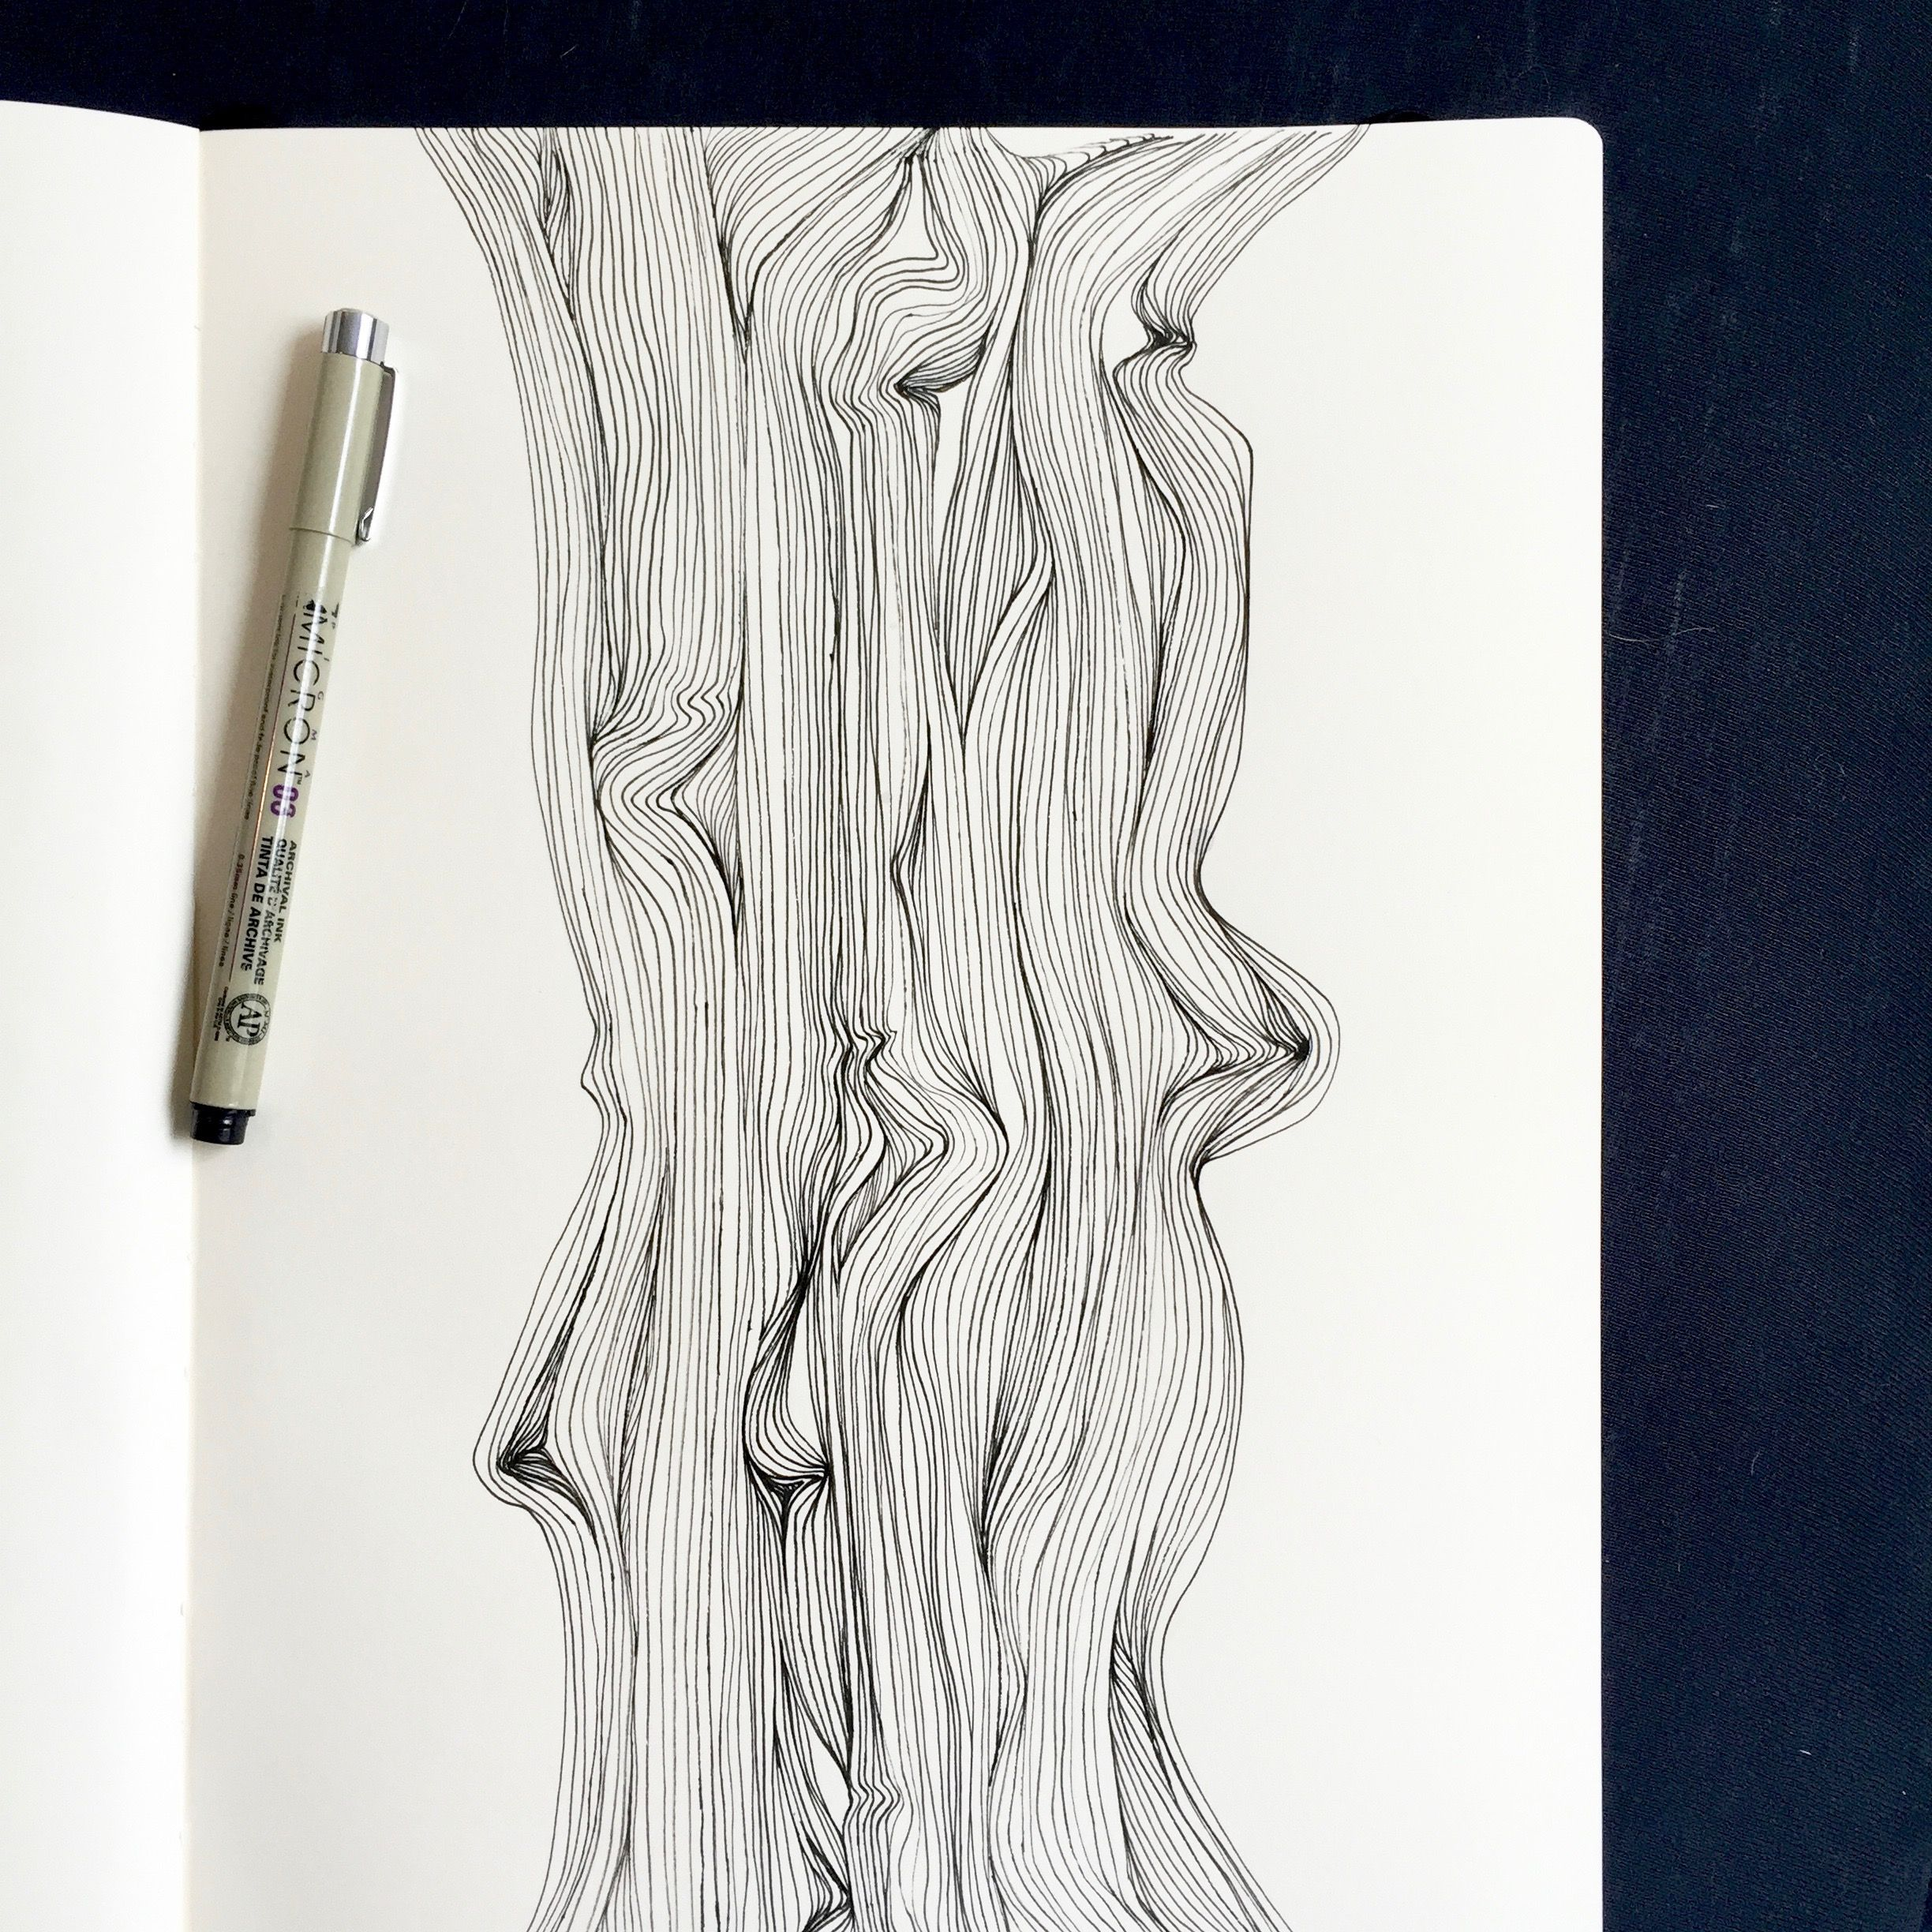 Art Therapy Line Work Lines Abstract Art Illustration